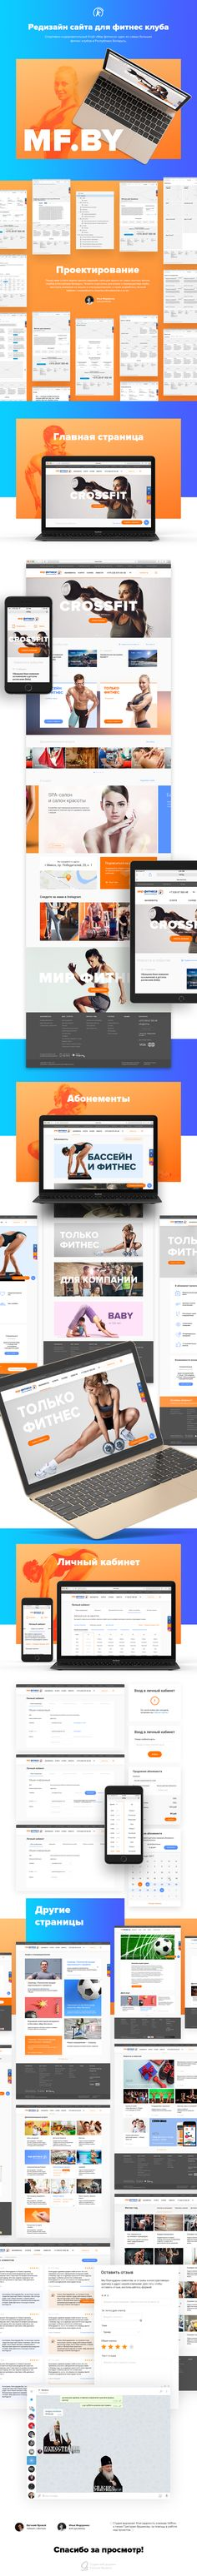 Redesign of the fitness club site «World of fitness» on Behance